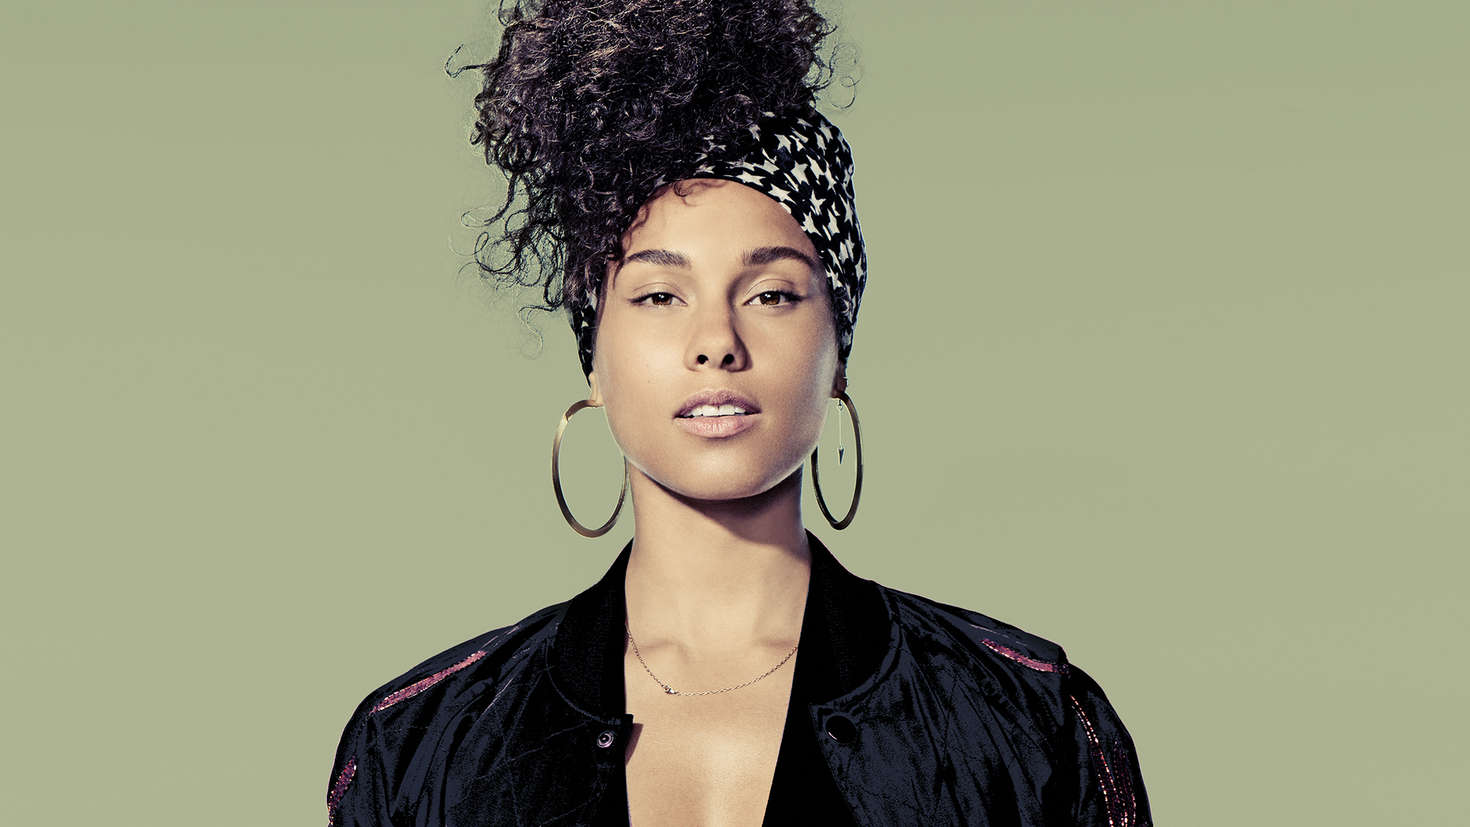 Alicia Keys Saturday Night Live Photoshoot